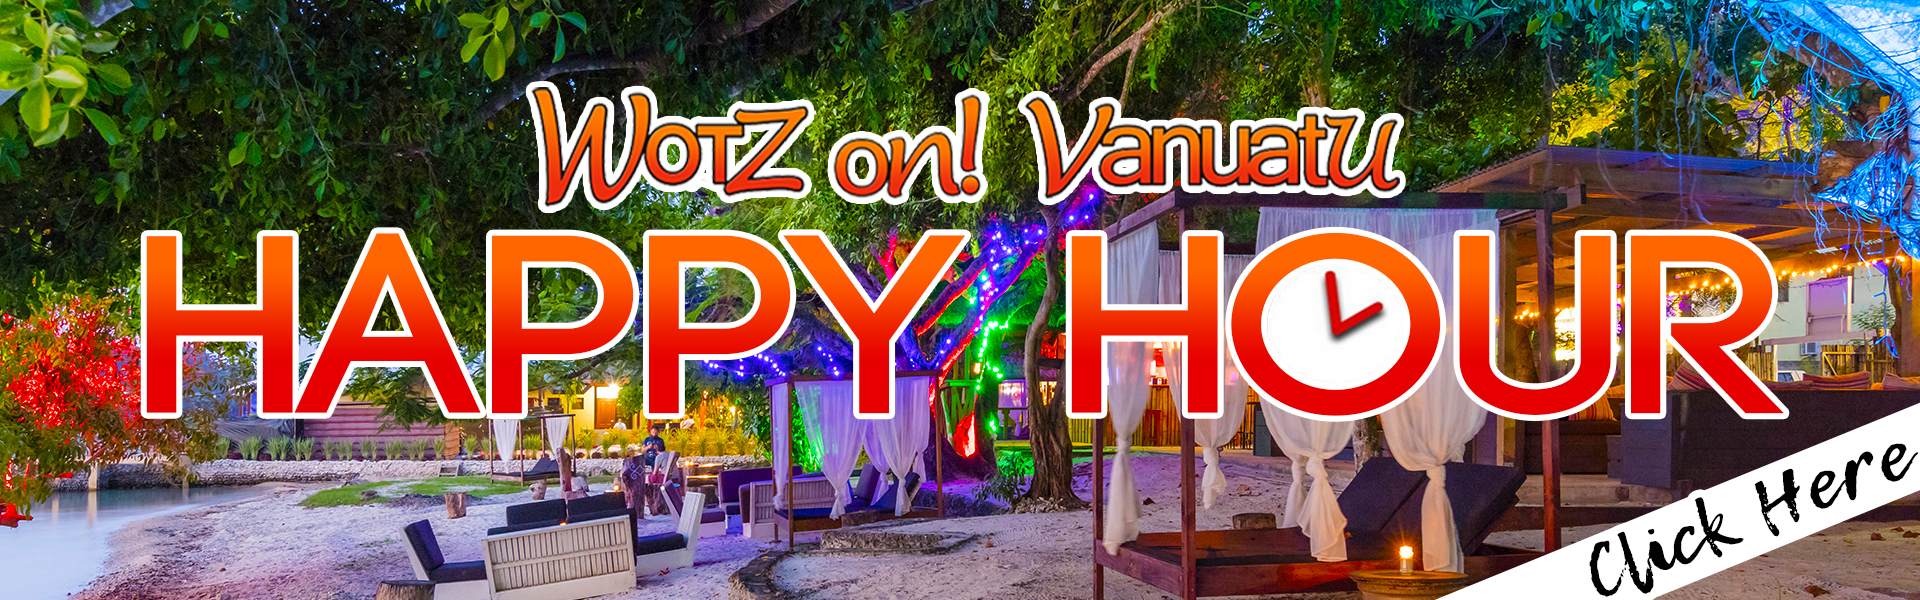 https://wotzonvanuatu.com/wp-content/uploads/2018/03/Wotz-on-Happy-Hour-1.jpg